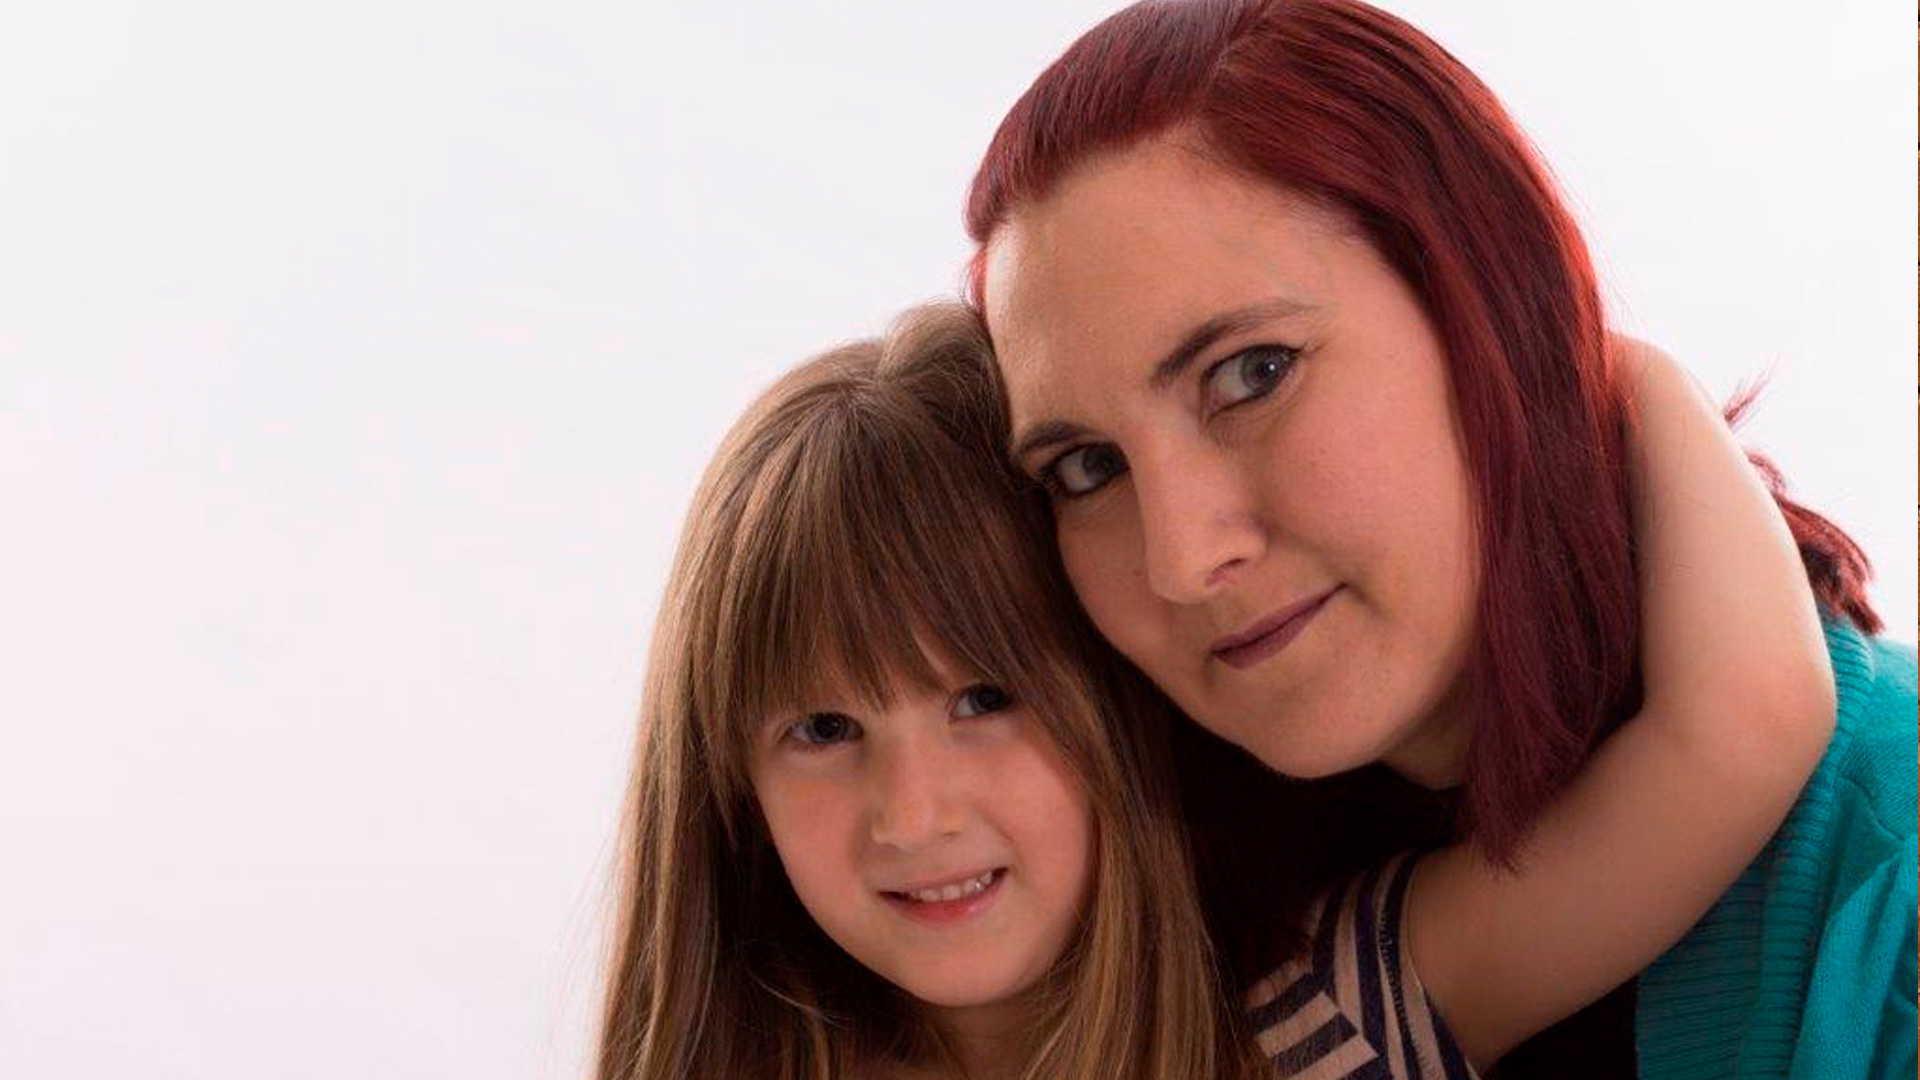 Kirsty's story